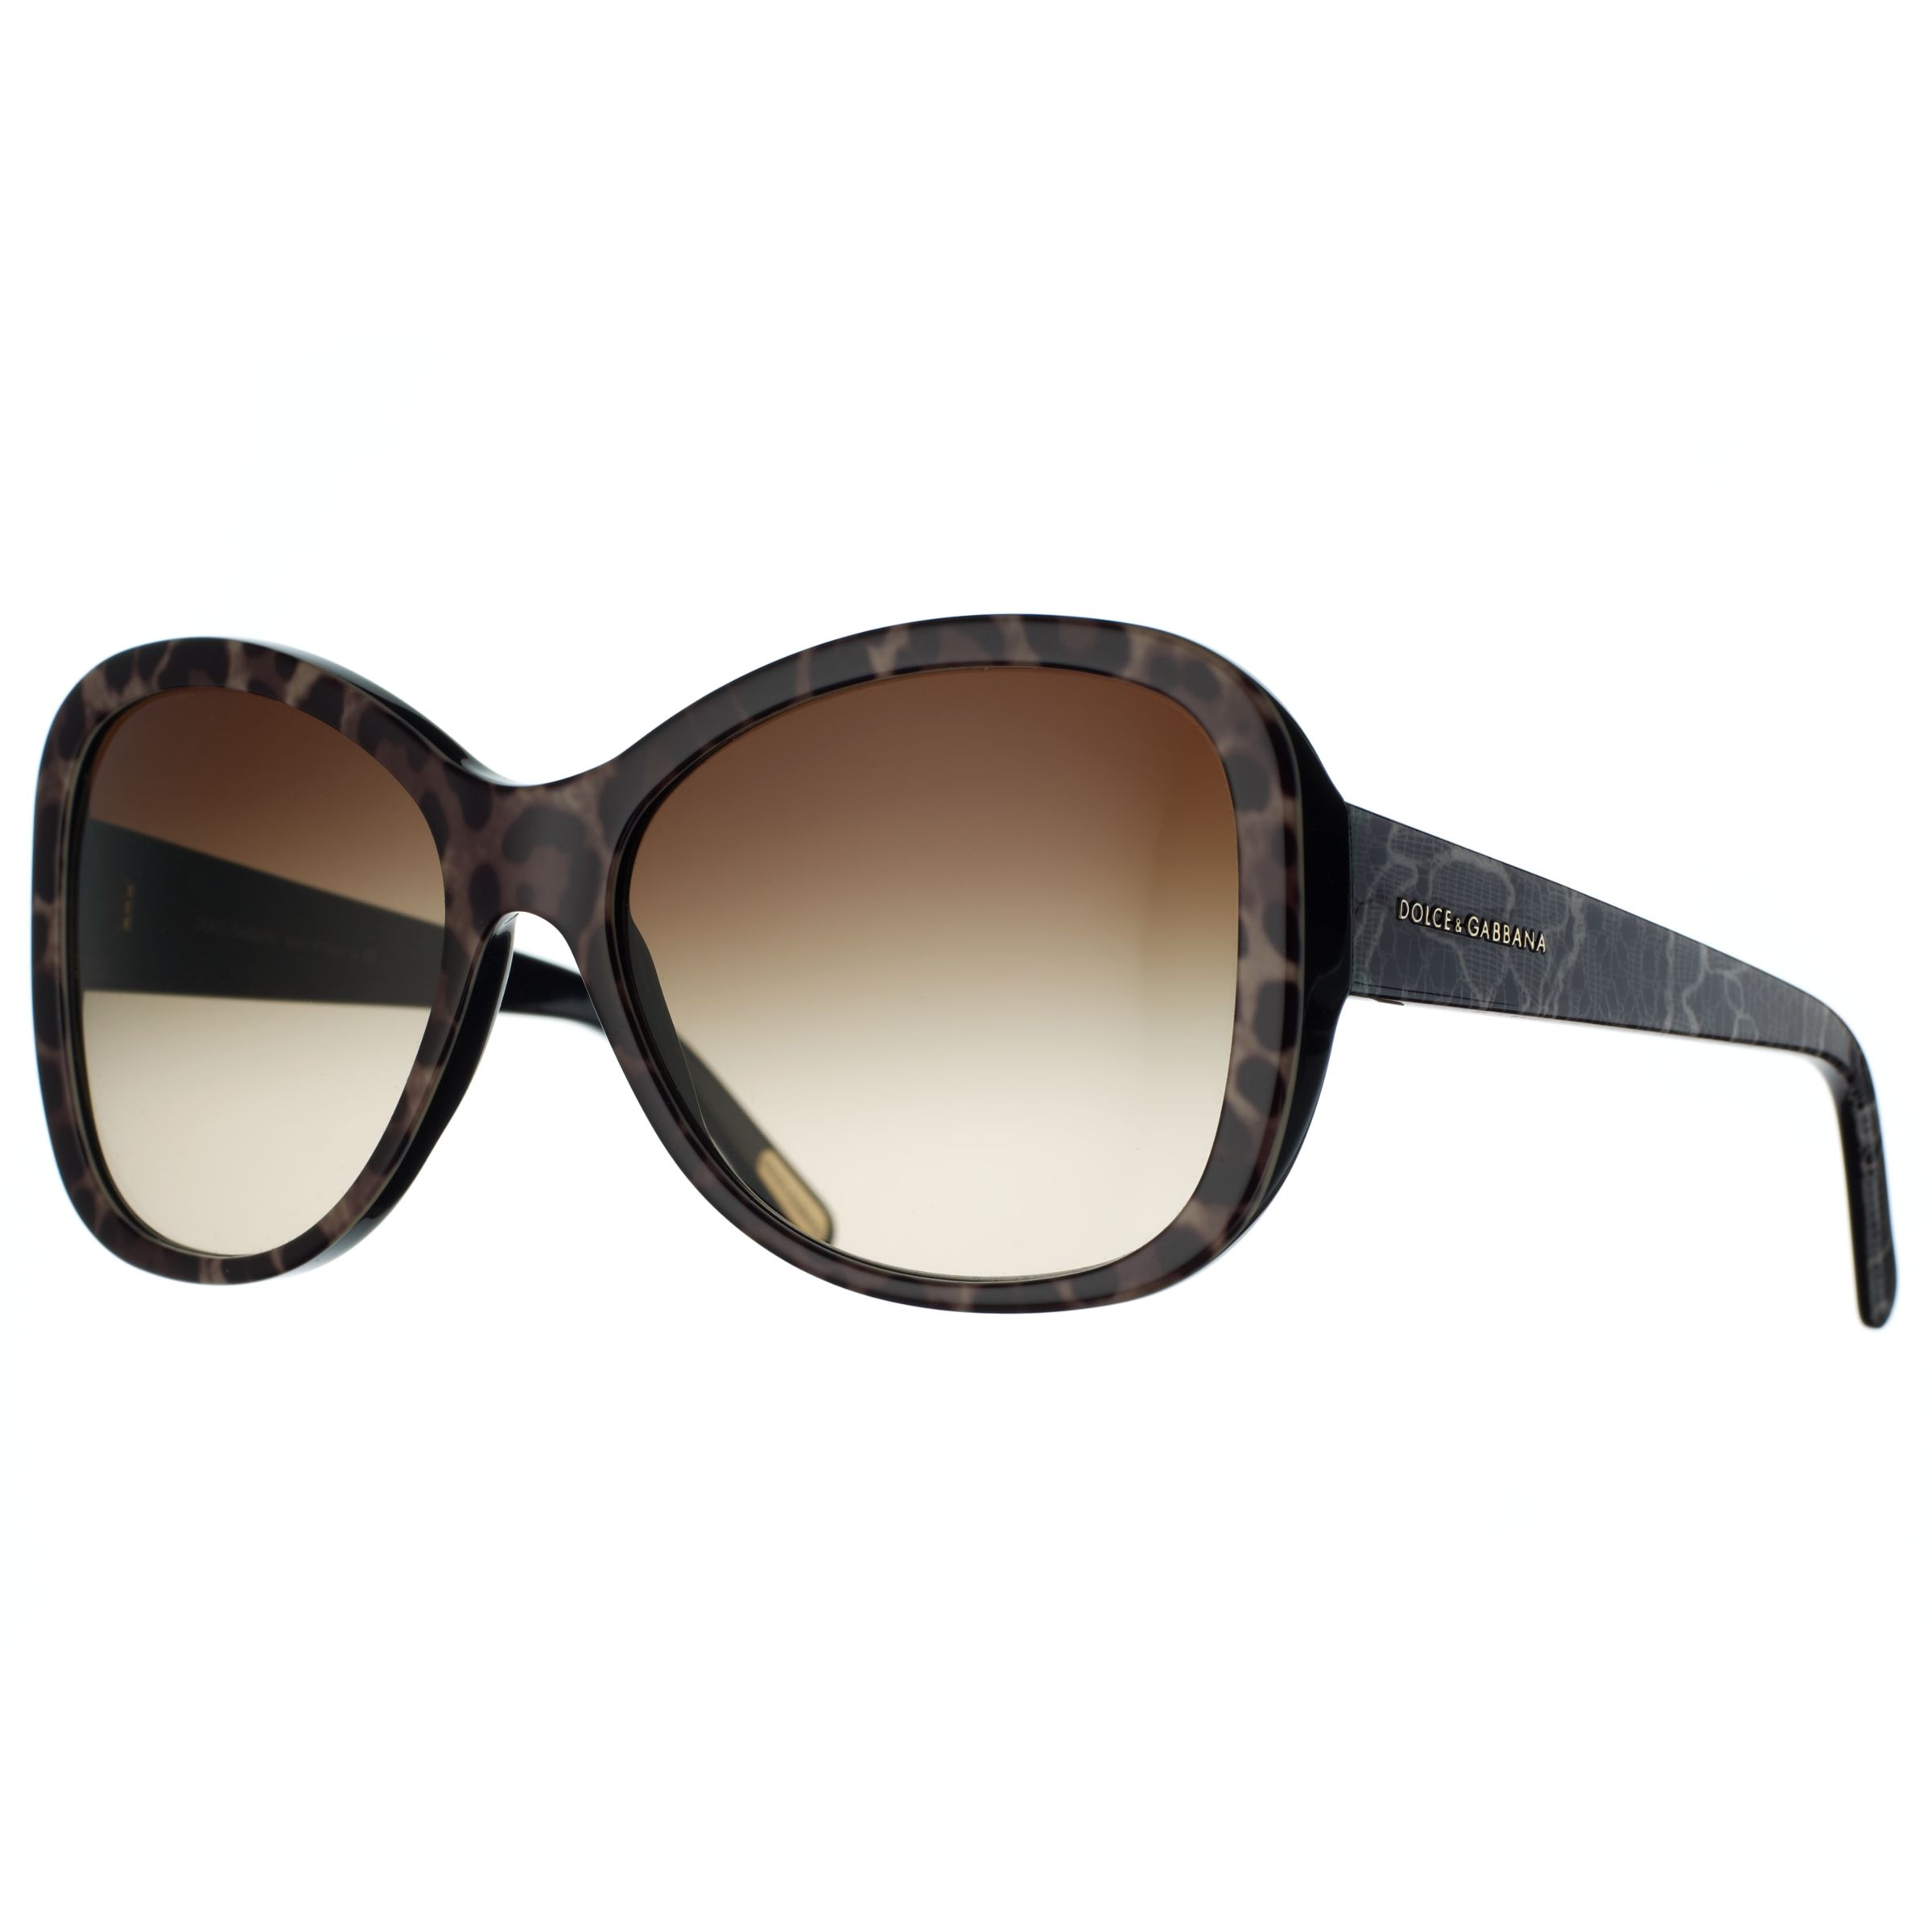 Dolce & Gabbana Animal Rectangle Sunglasses, Brown